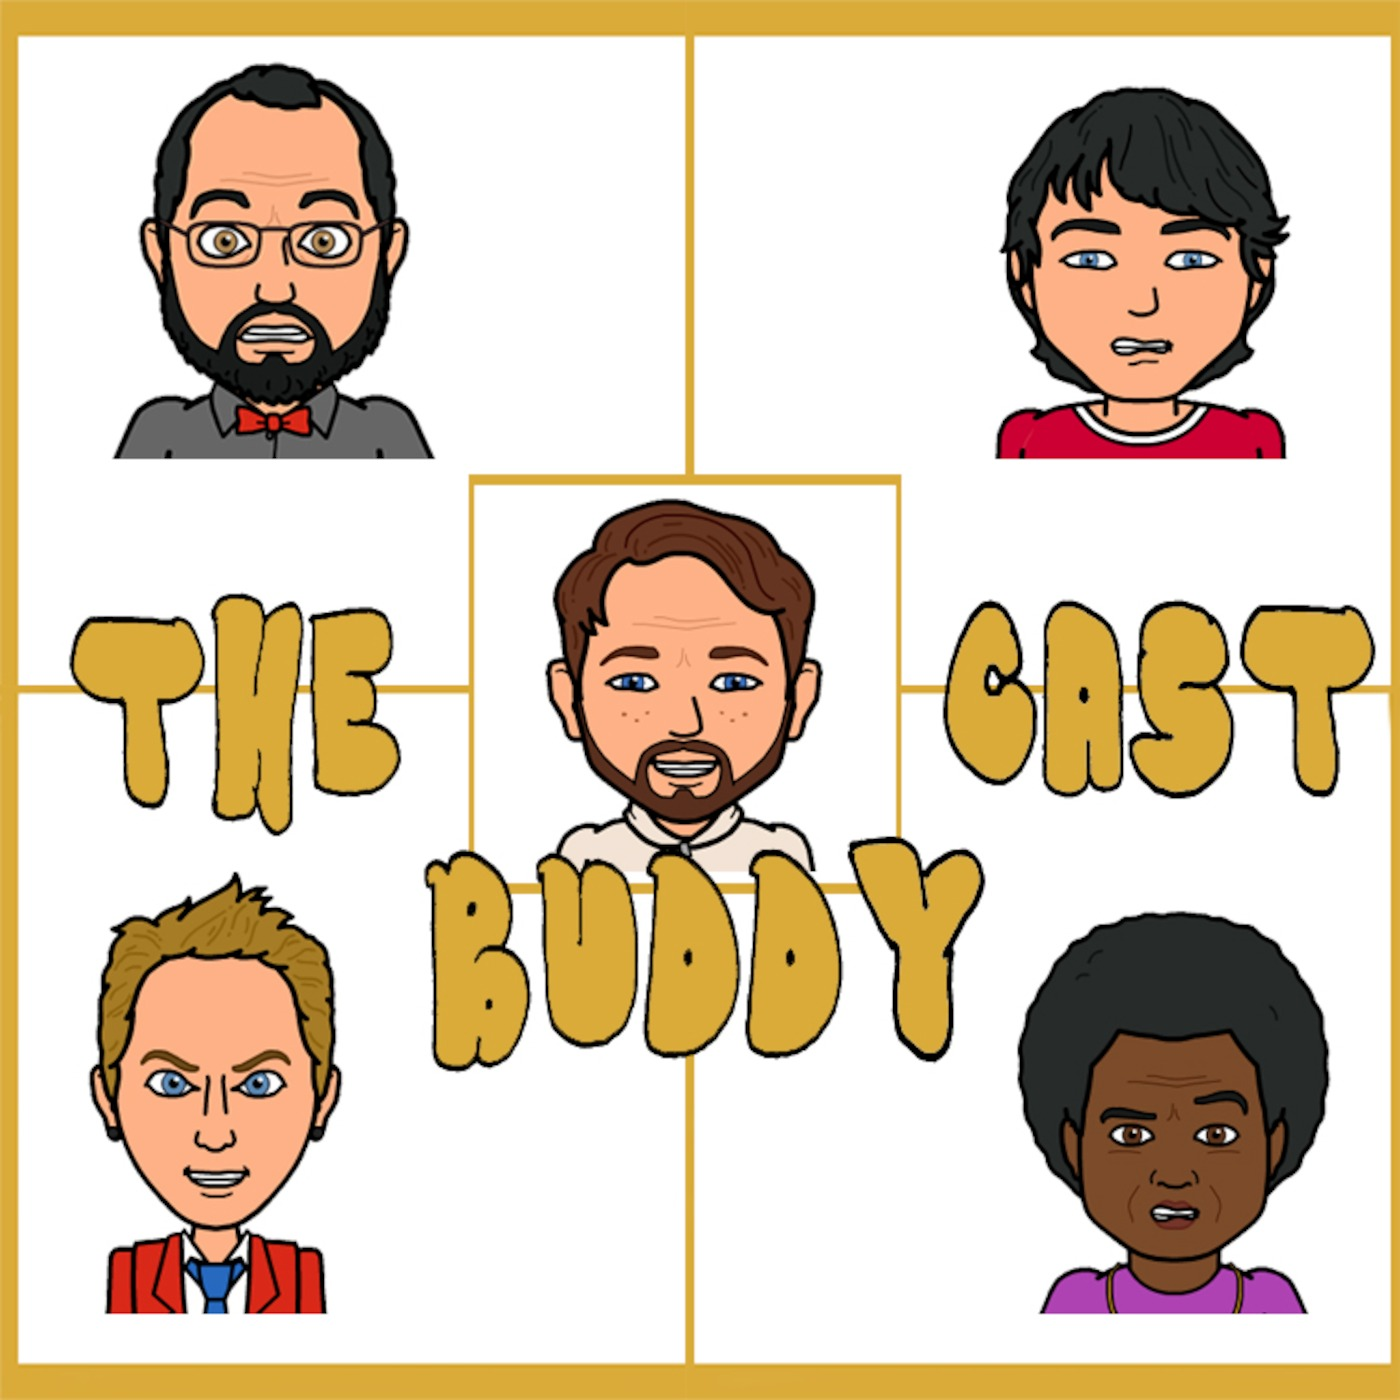 TheBuddyCast Podcast